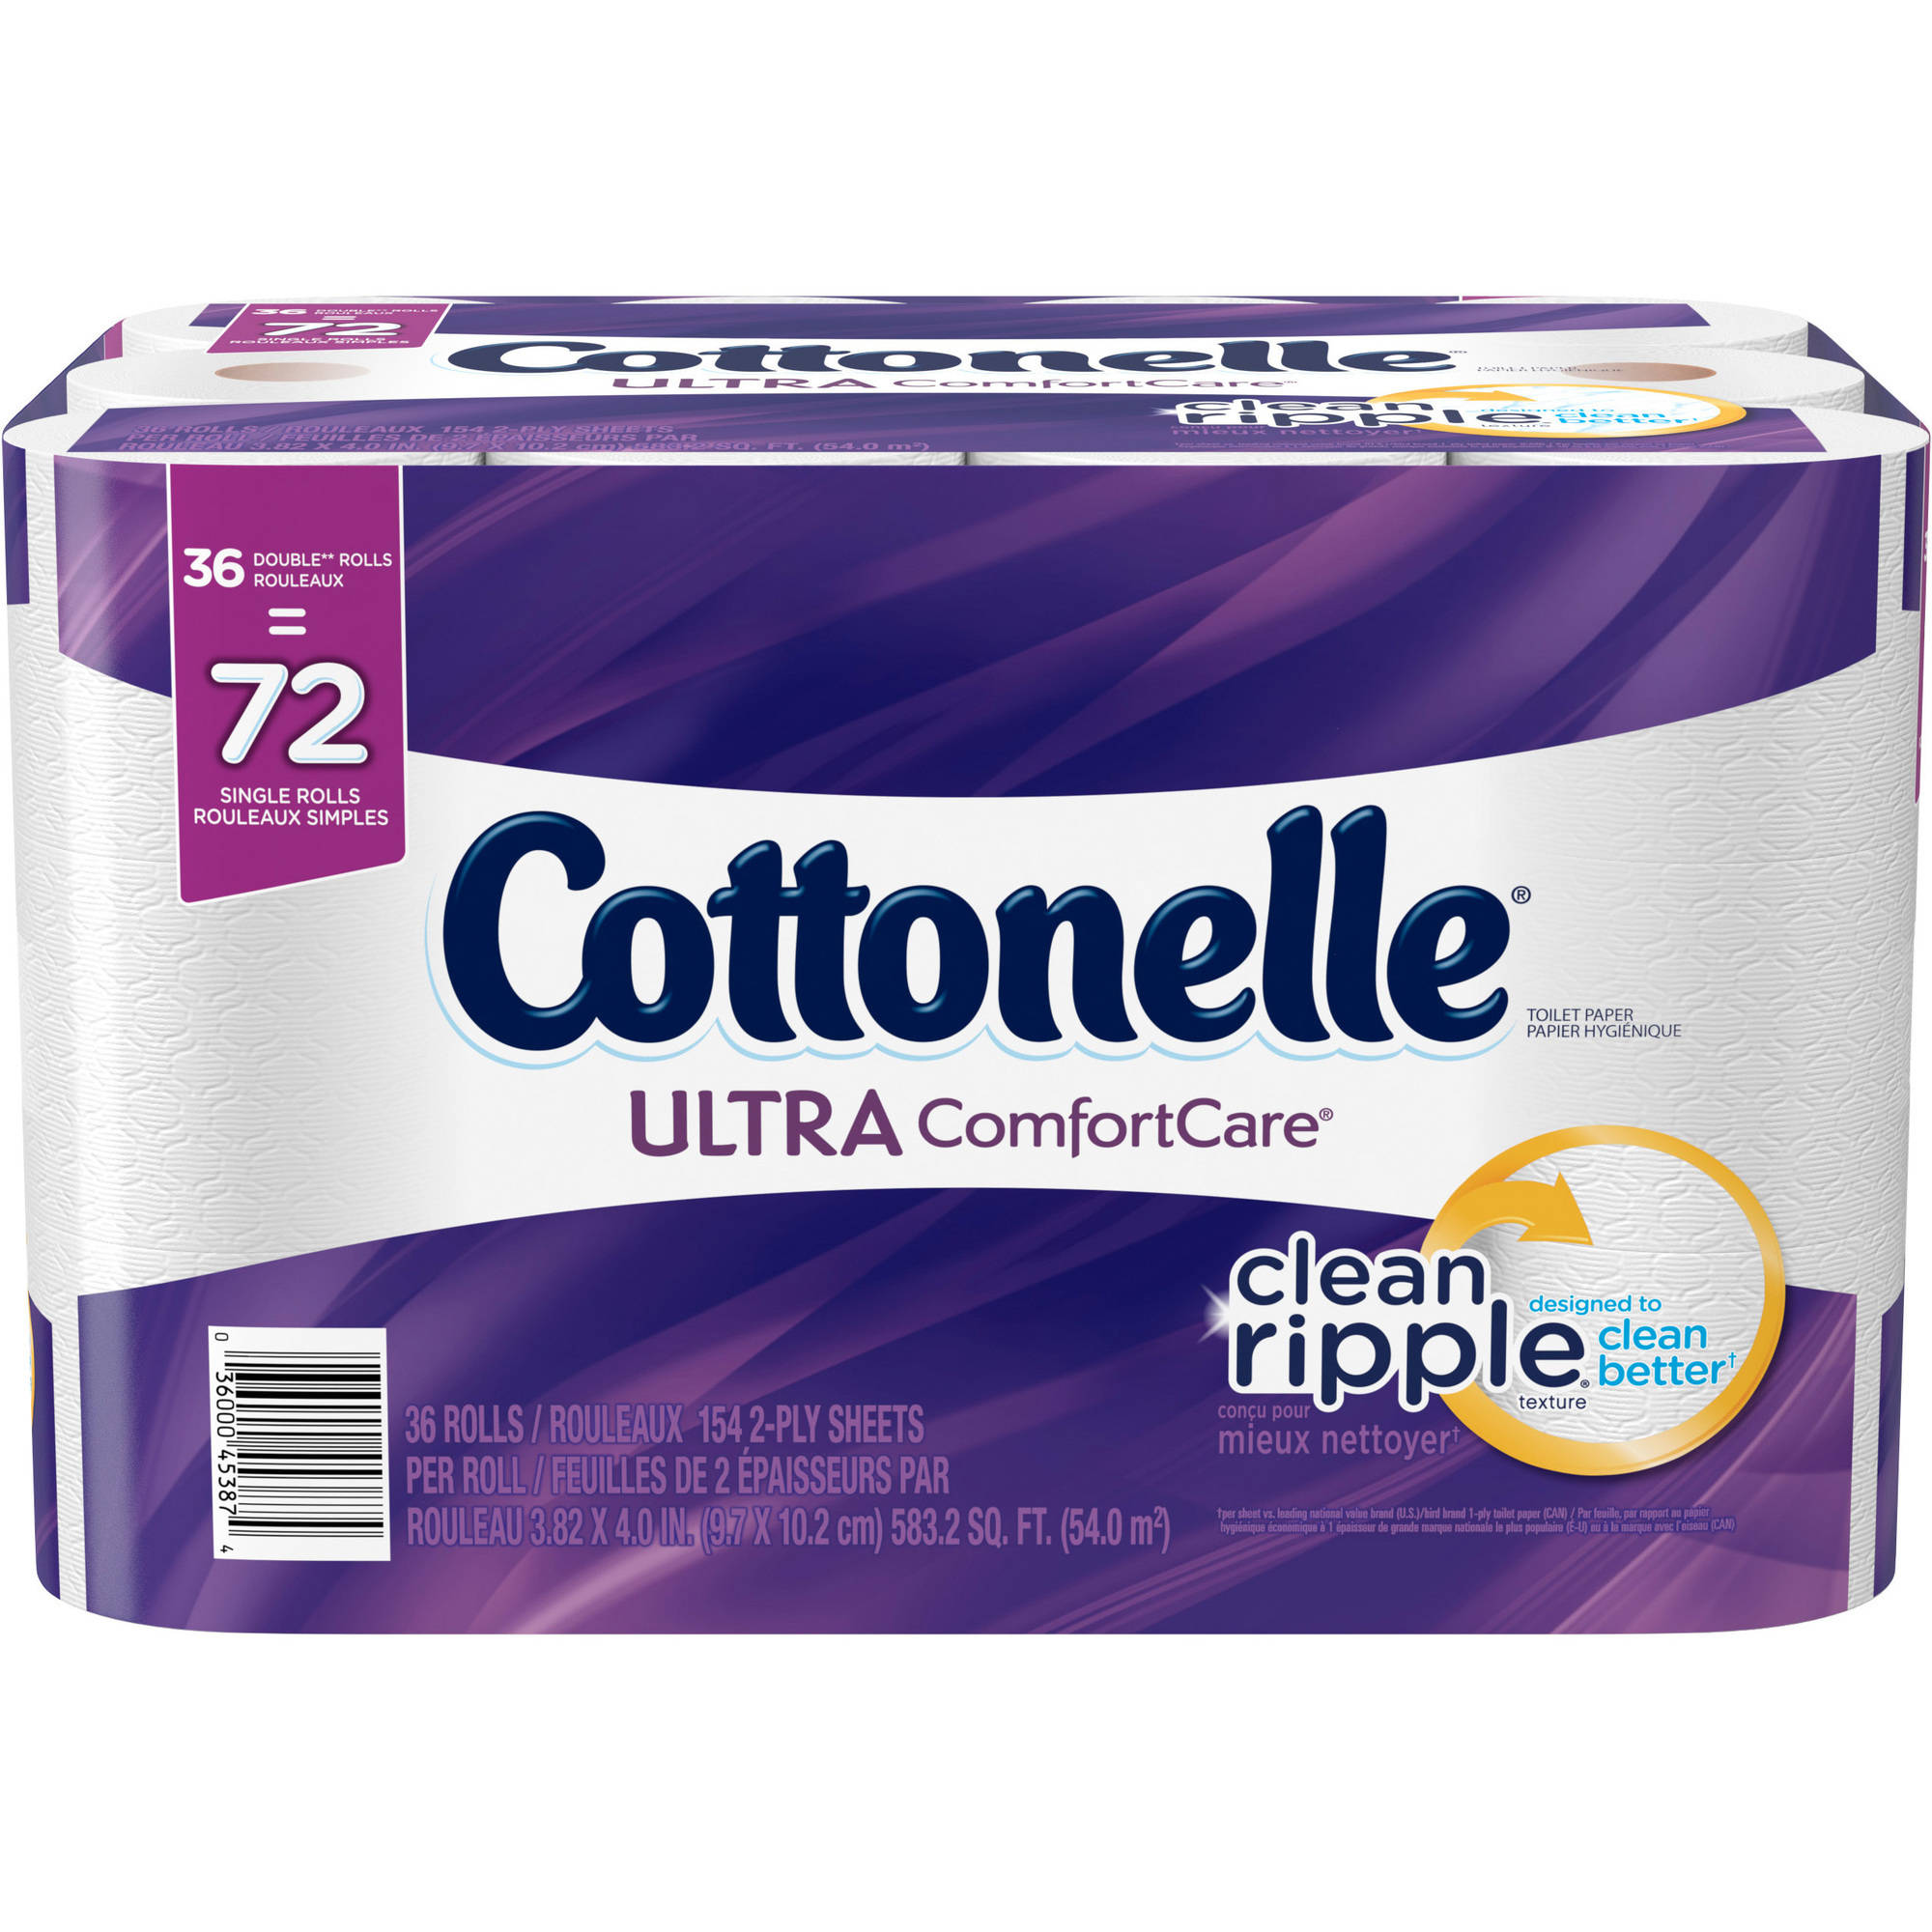 Cottonelle Ultra Comfort Care Toilet Paper, 36 Double Rolls